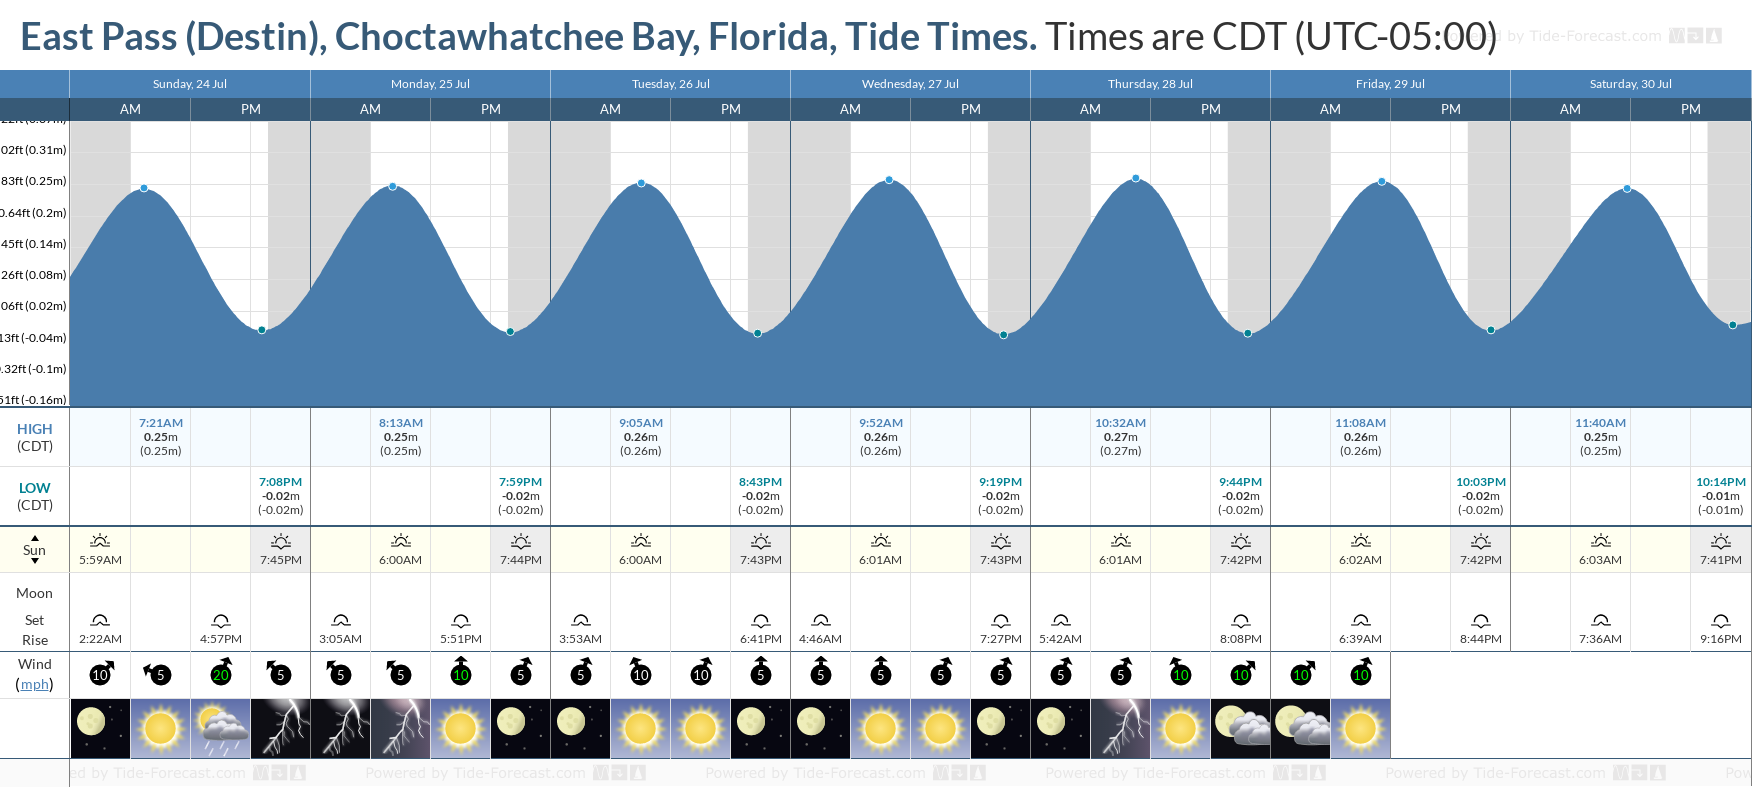 East Pass (Destin), Choctawhatchee Bay, Florida Tide Chart including high and low tide tide times for the next 7 days